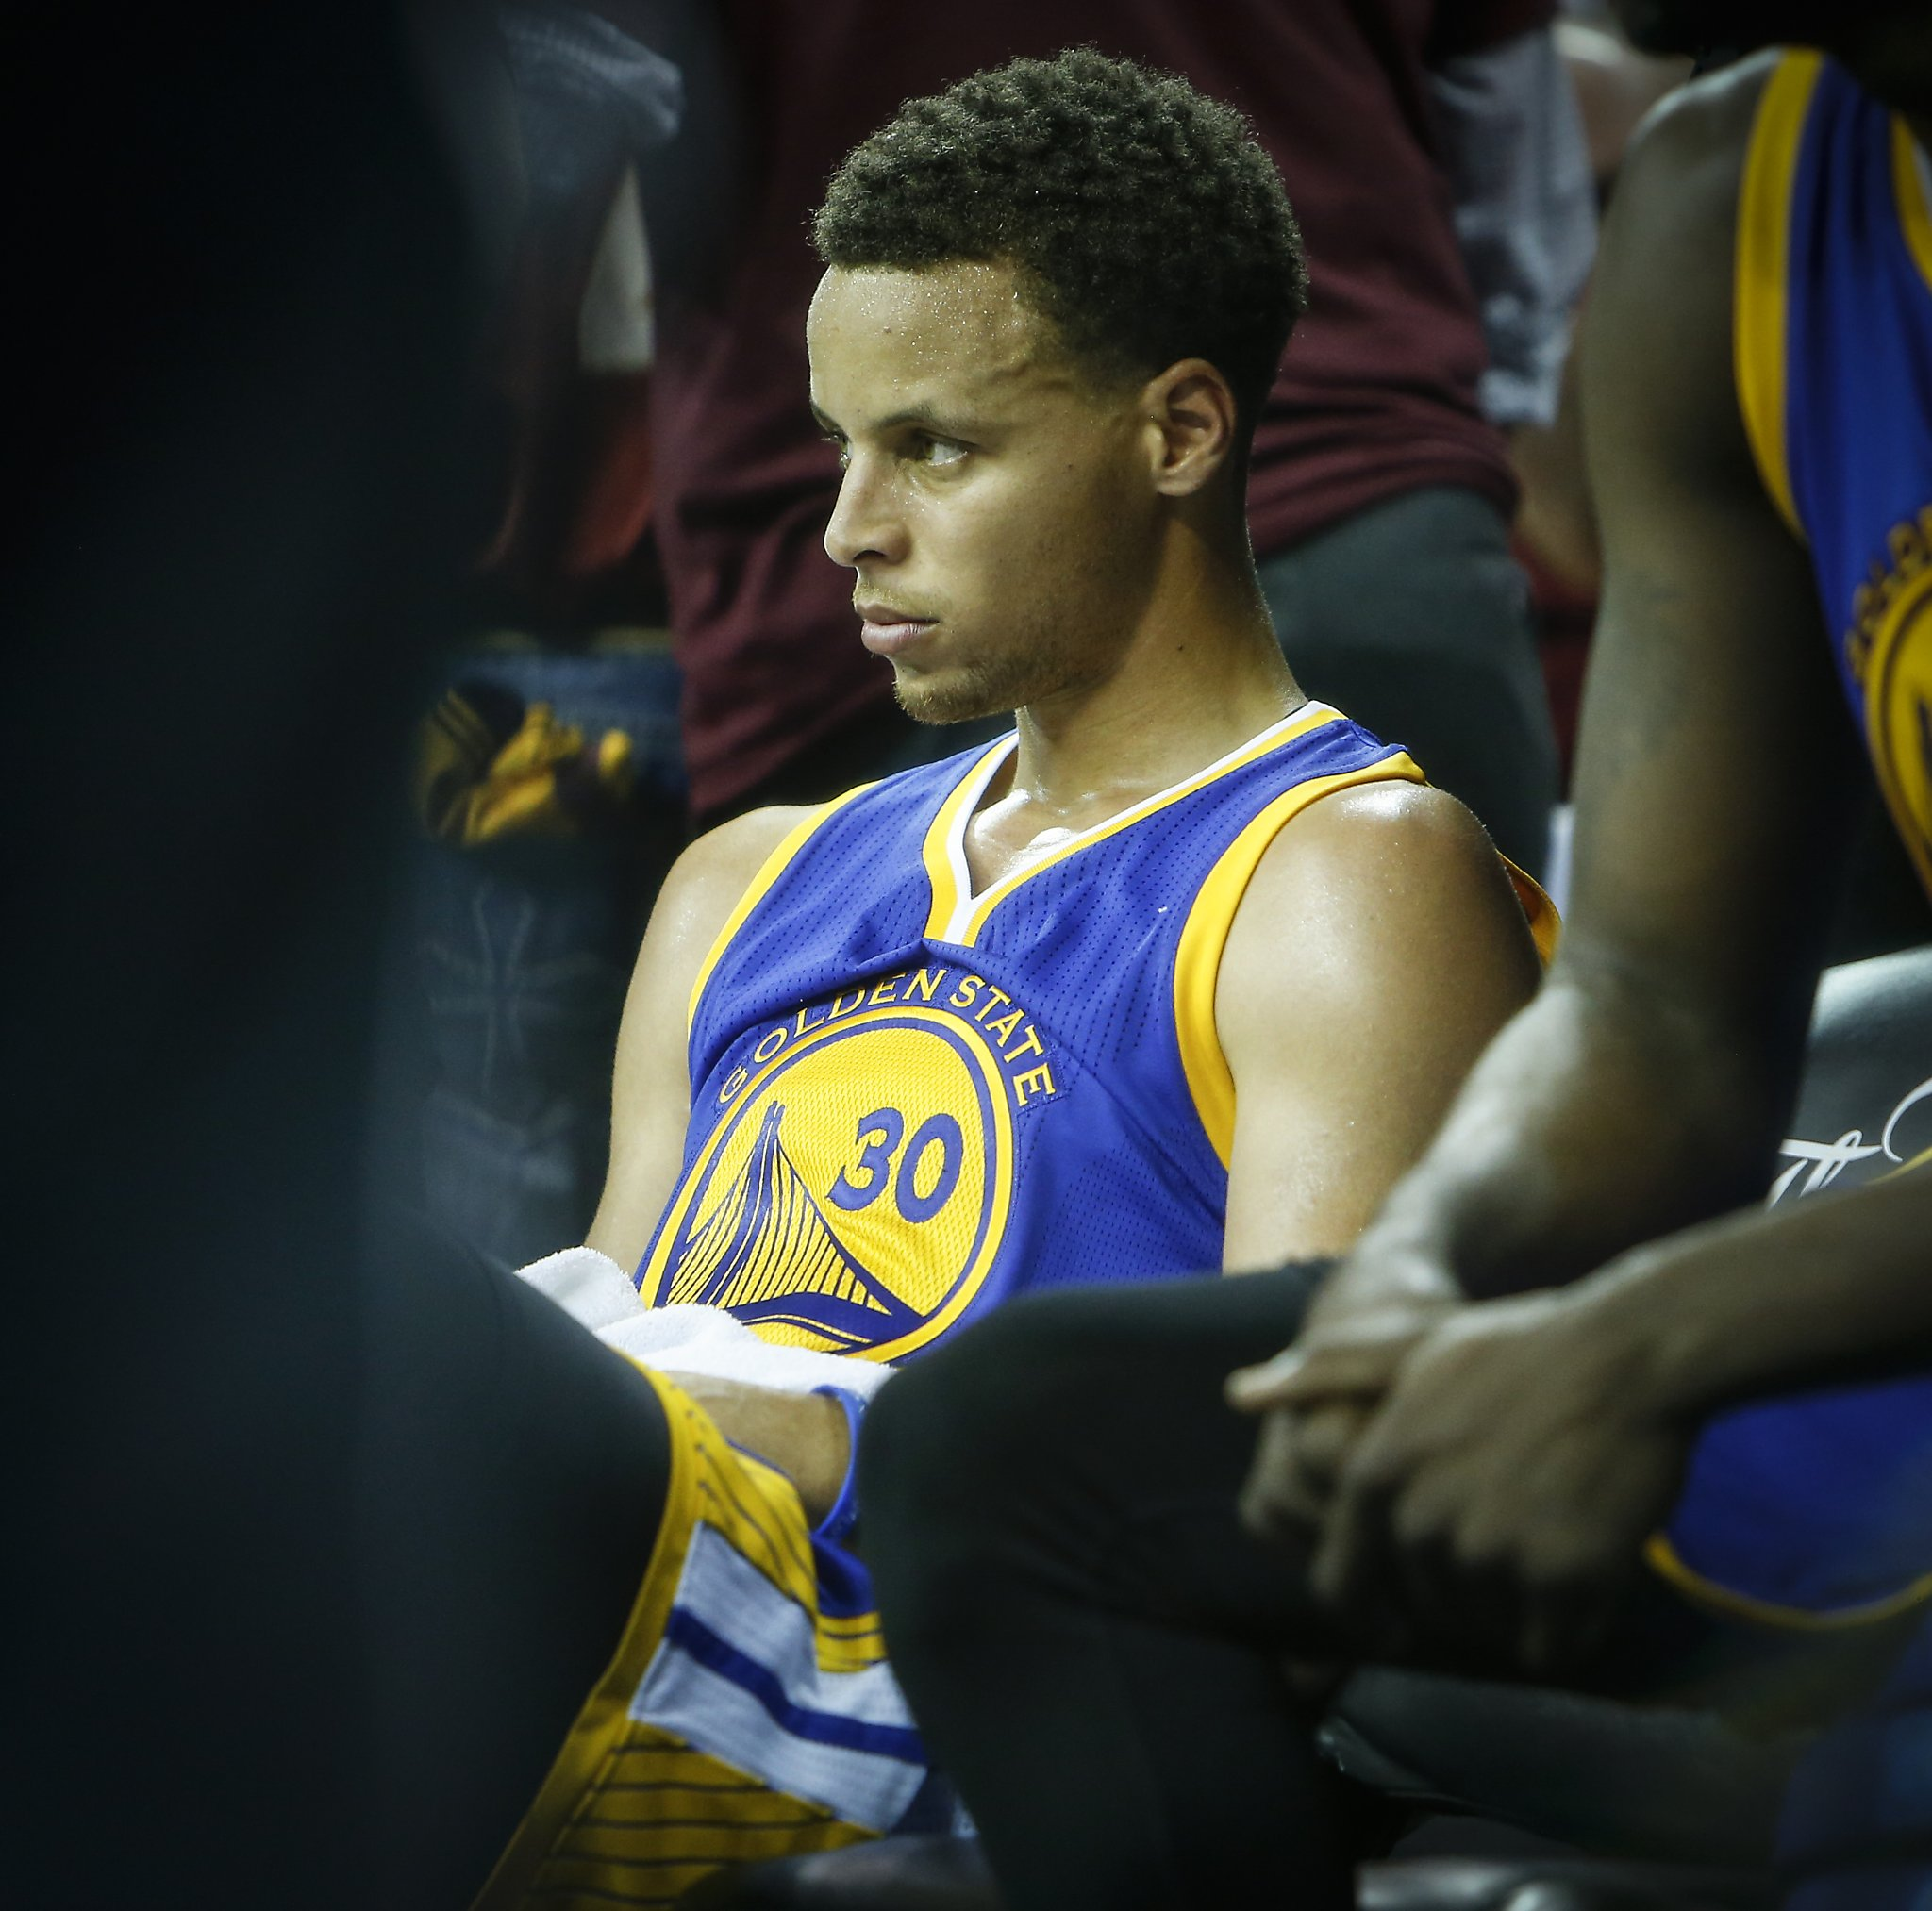 Nba Stephen Curry: NBA Finals Game 3: Photos From Warriors Vs. Cavaliers